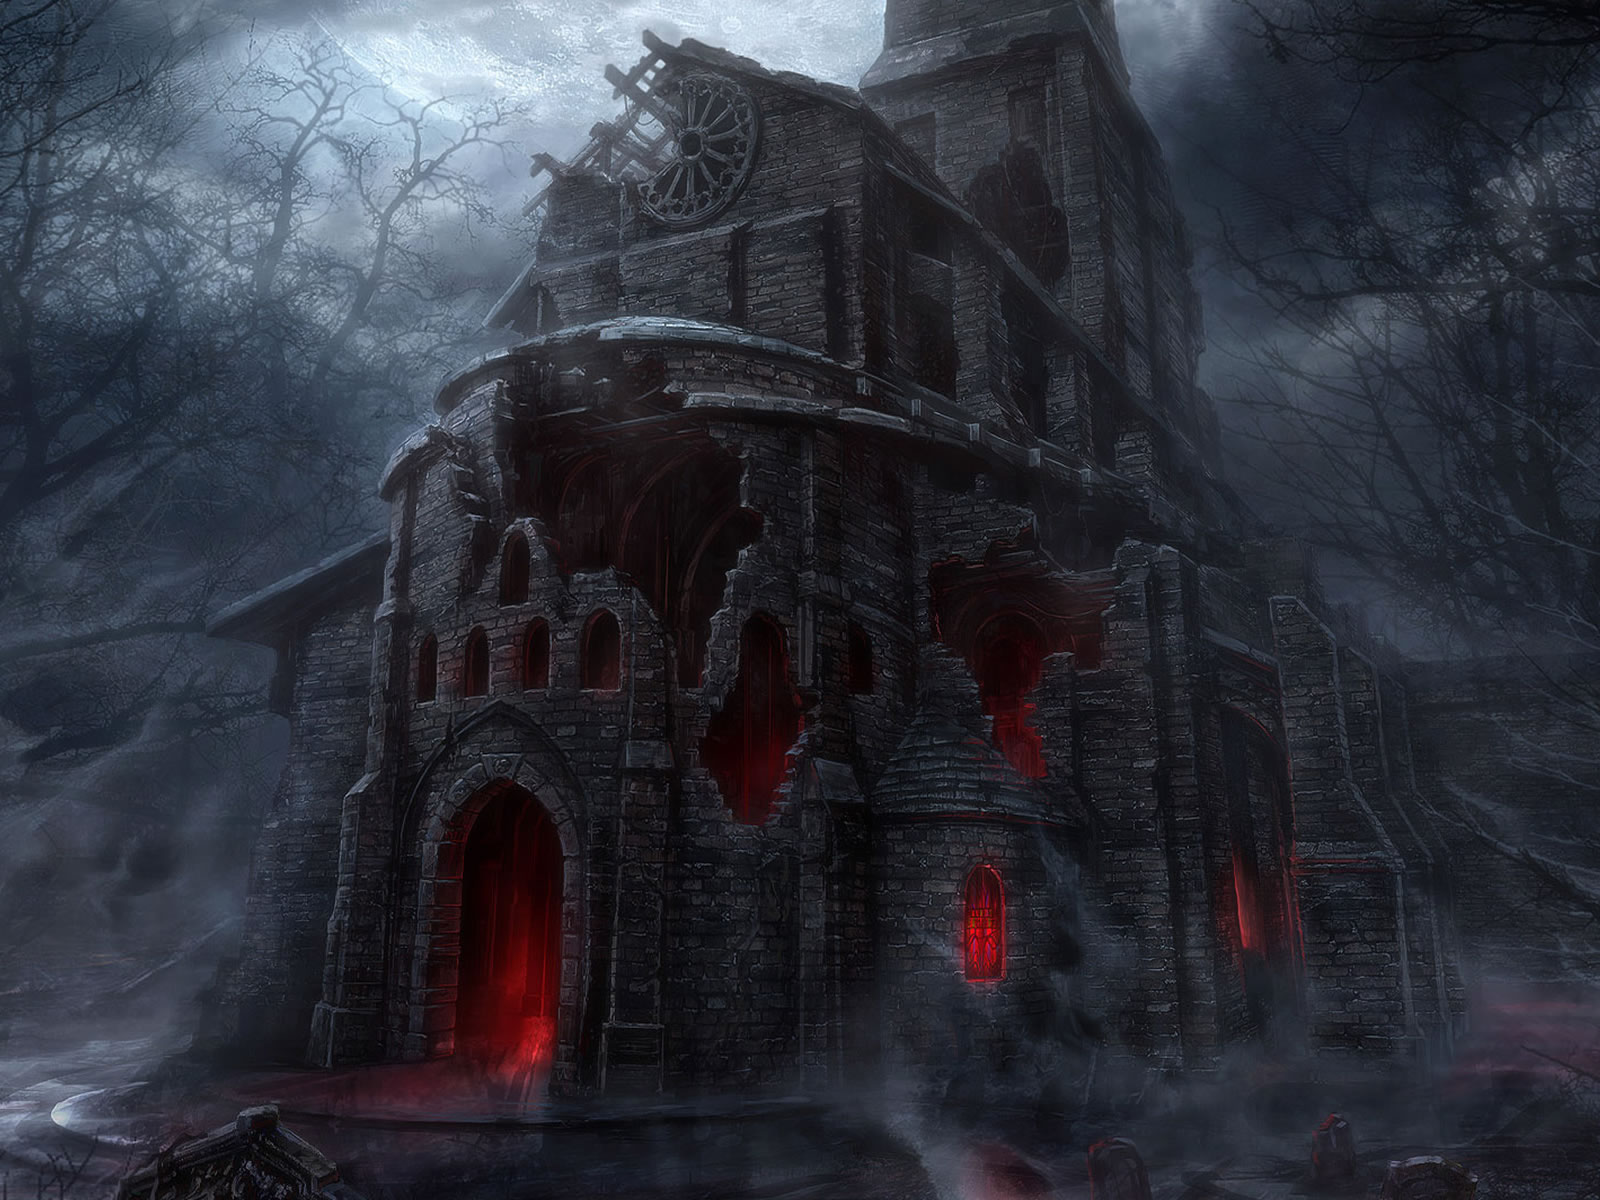 Scary House The Vampire Diaries Photo 36717982 Fanpop